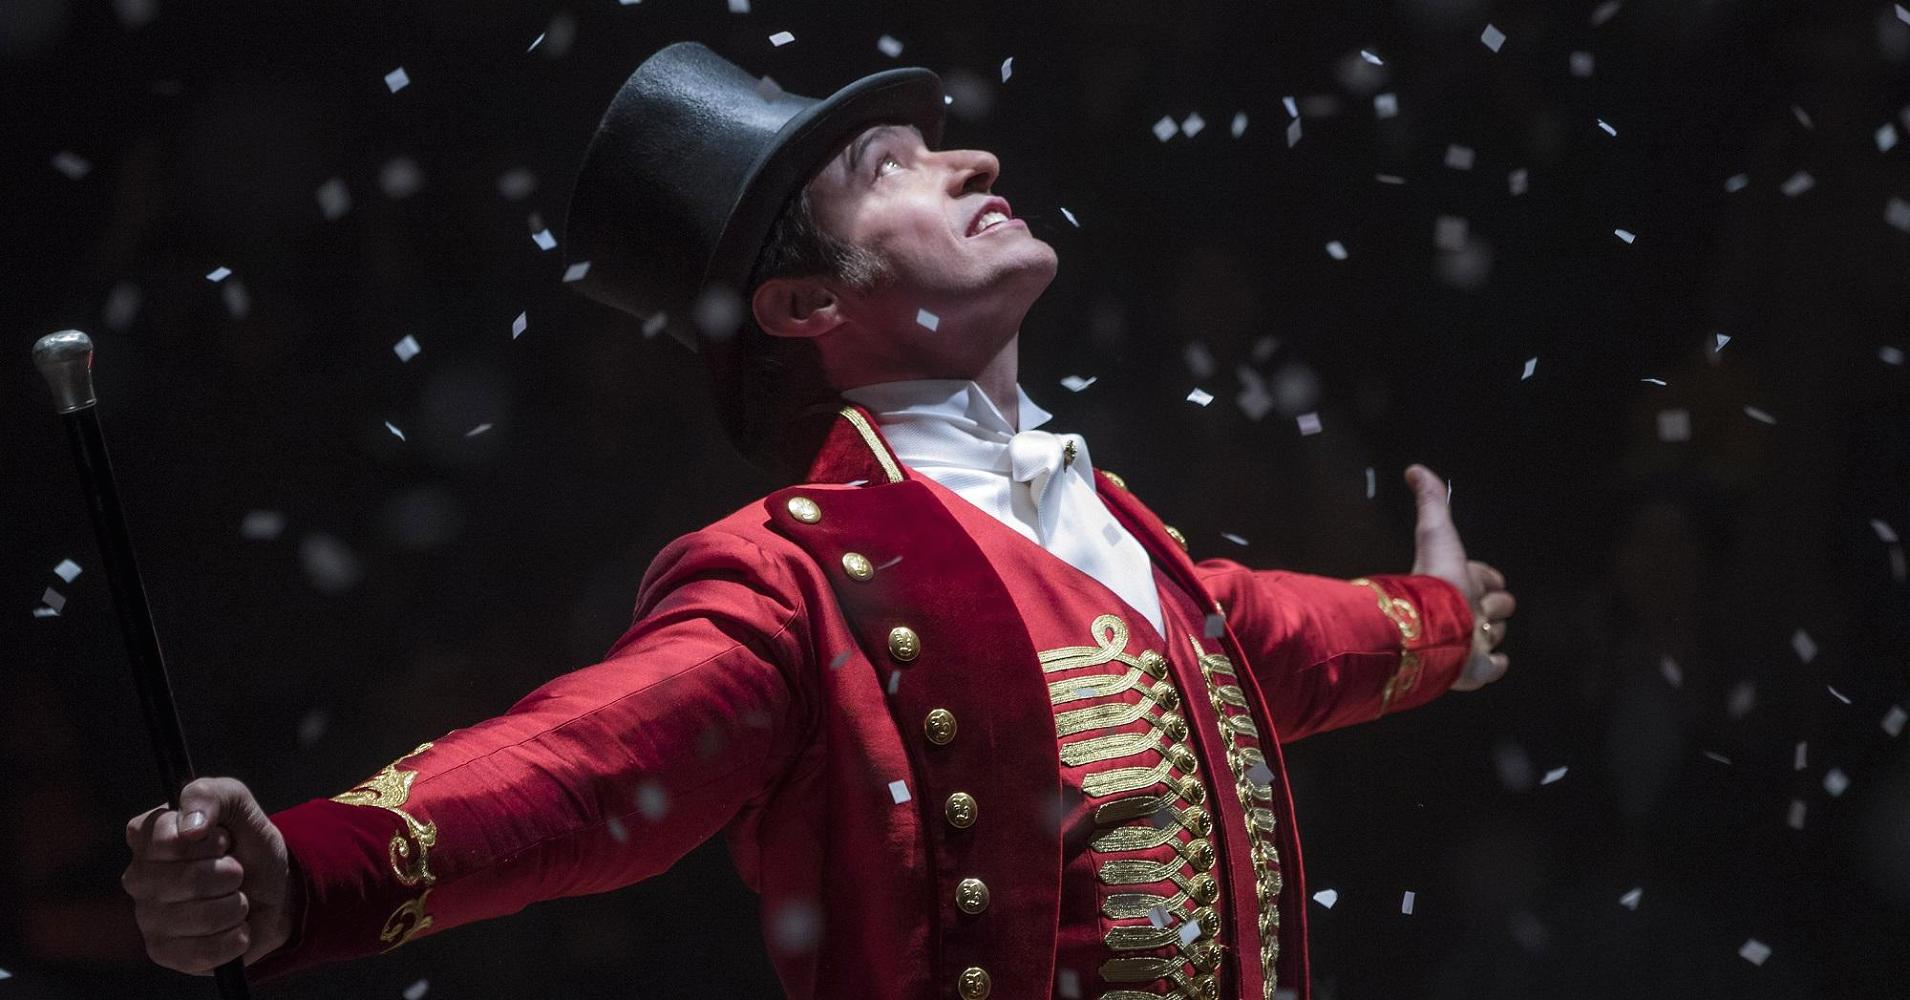 Hugh Jackman as P.T. Barnum in The Greatest Showman